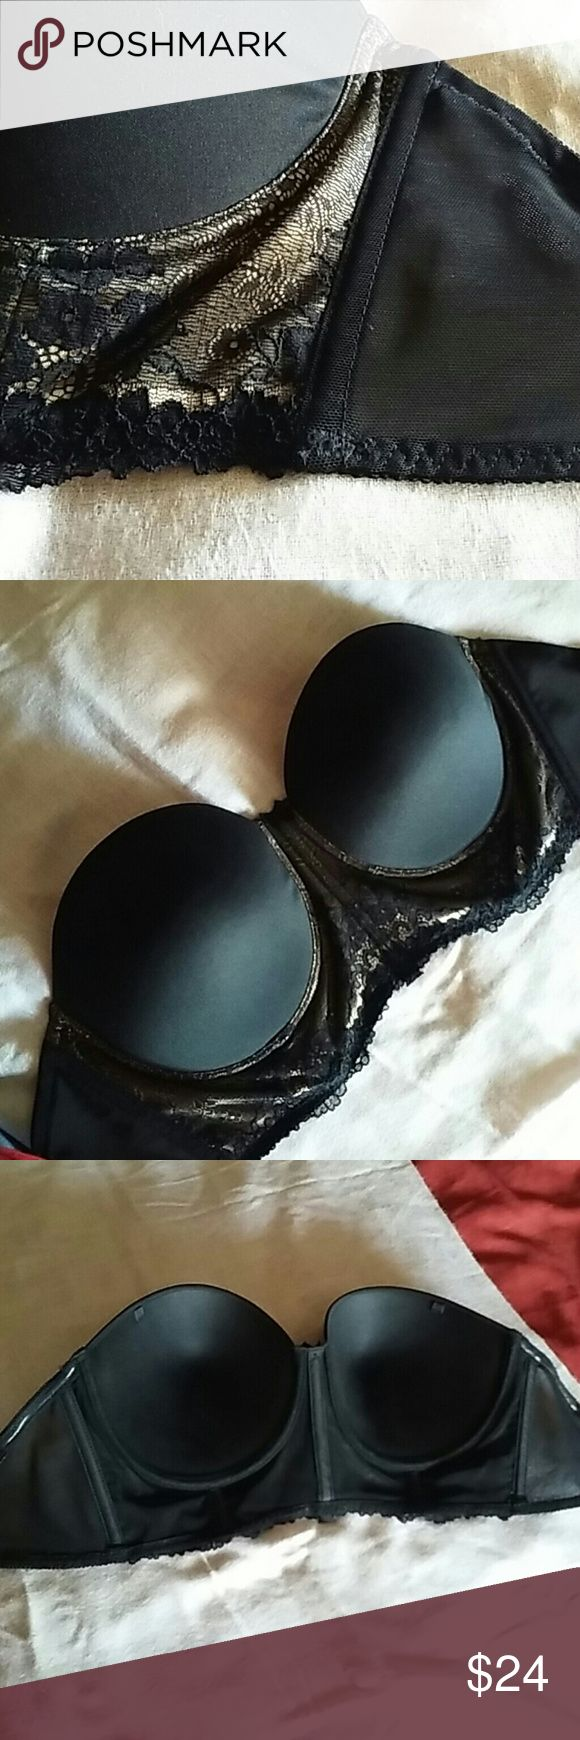 34F / 34G Strapless Bra Worn once. Cup size is on the big side for a 34F. Band size is accurate.  This is a beautiful bustier. Great support!  Selling because the cup size is just a little too big. Would be perfect for a full 34F or small 34G. Black molded cups and black lace over goldish-nude.  Does come with straps still in the package. This is in like new condition. I did cut out the tag, but it said 34F for the size. Panache Intimates & Sleepwear Bras